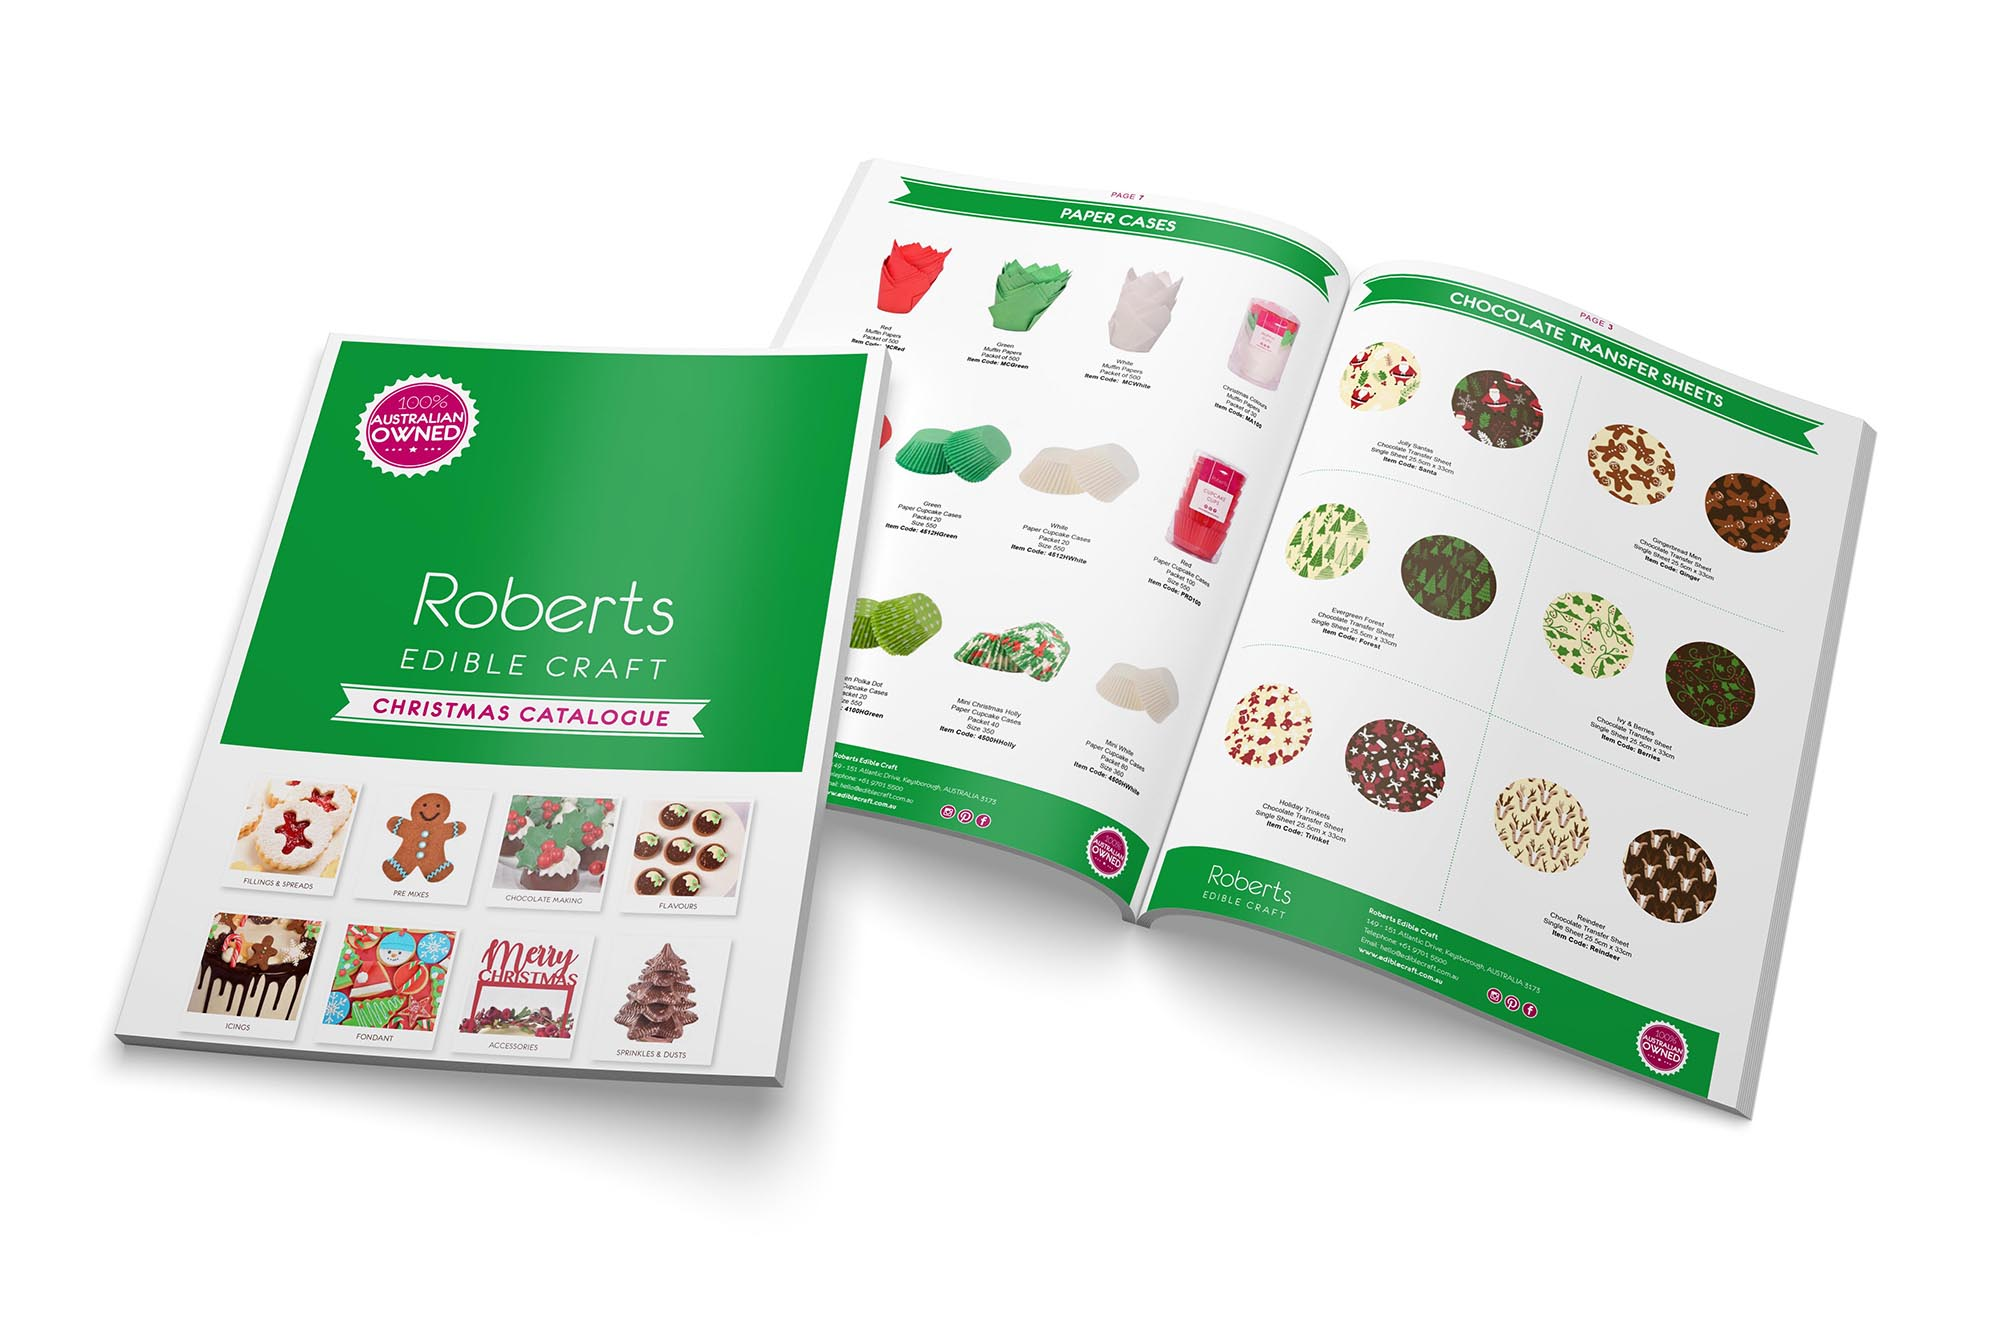 roberts-christmas-catalogue-open-image.jpg